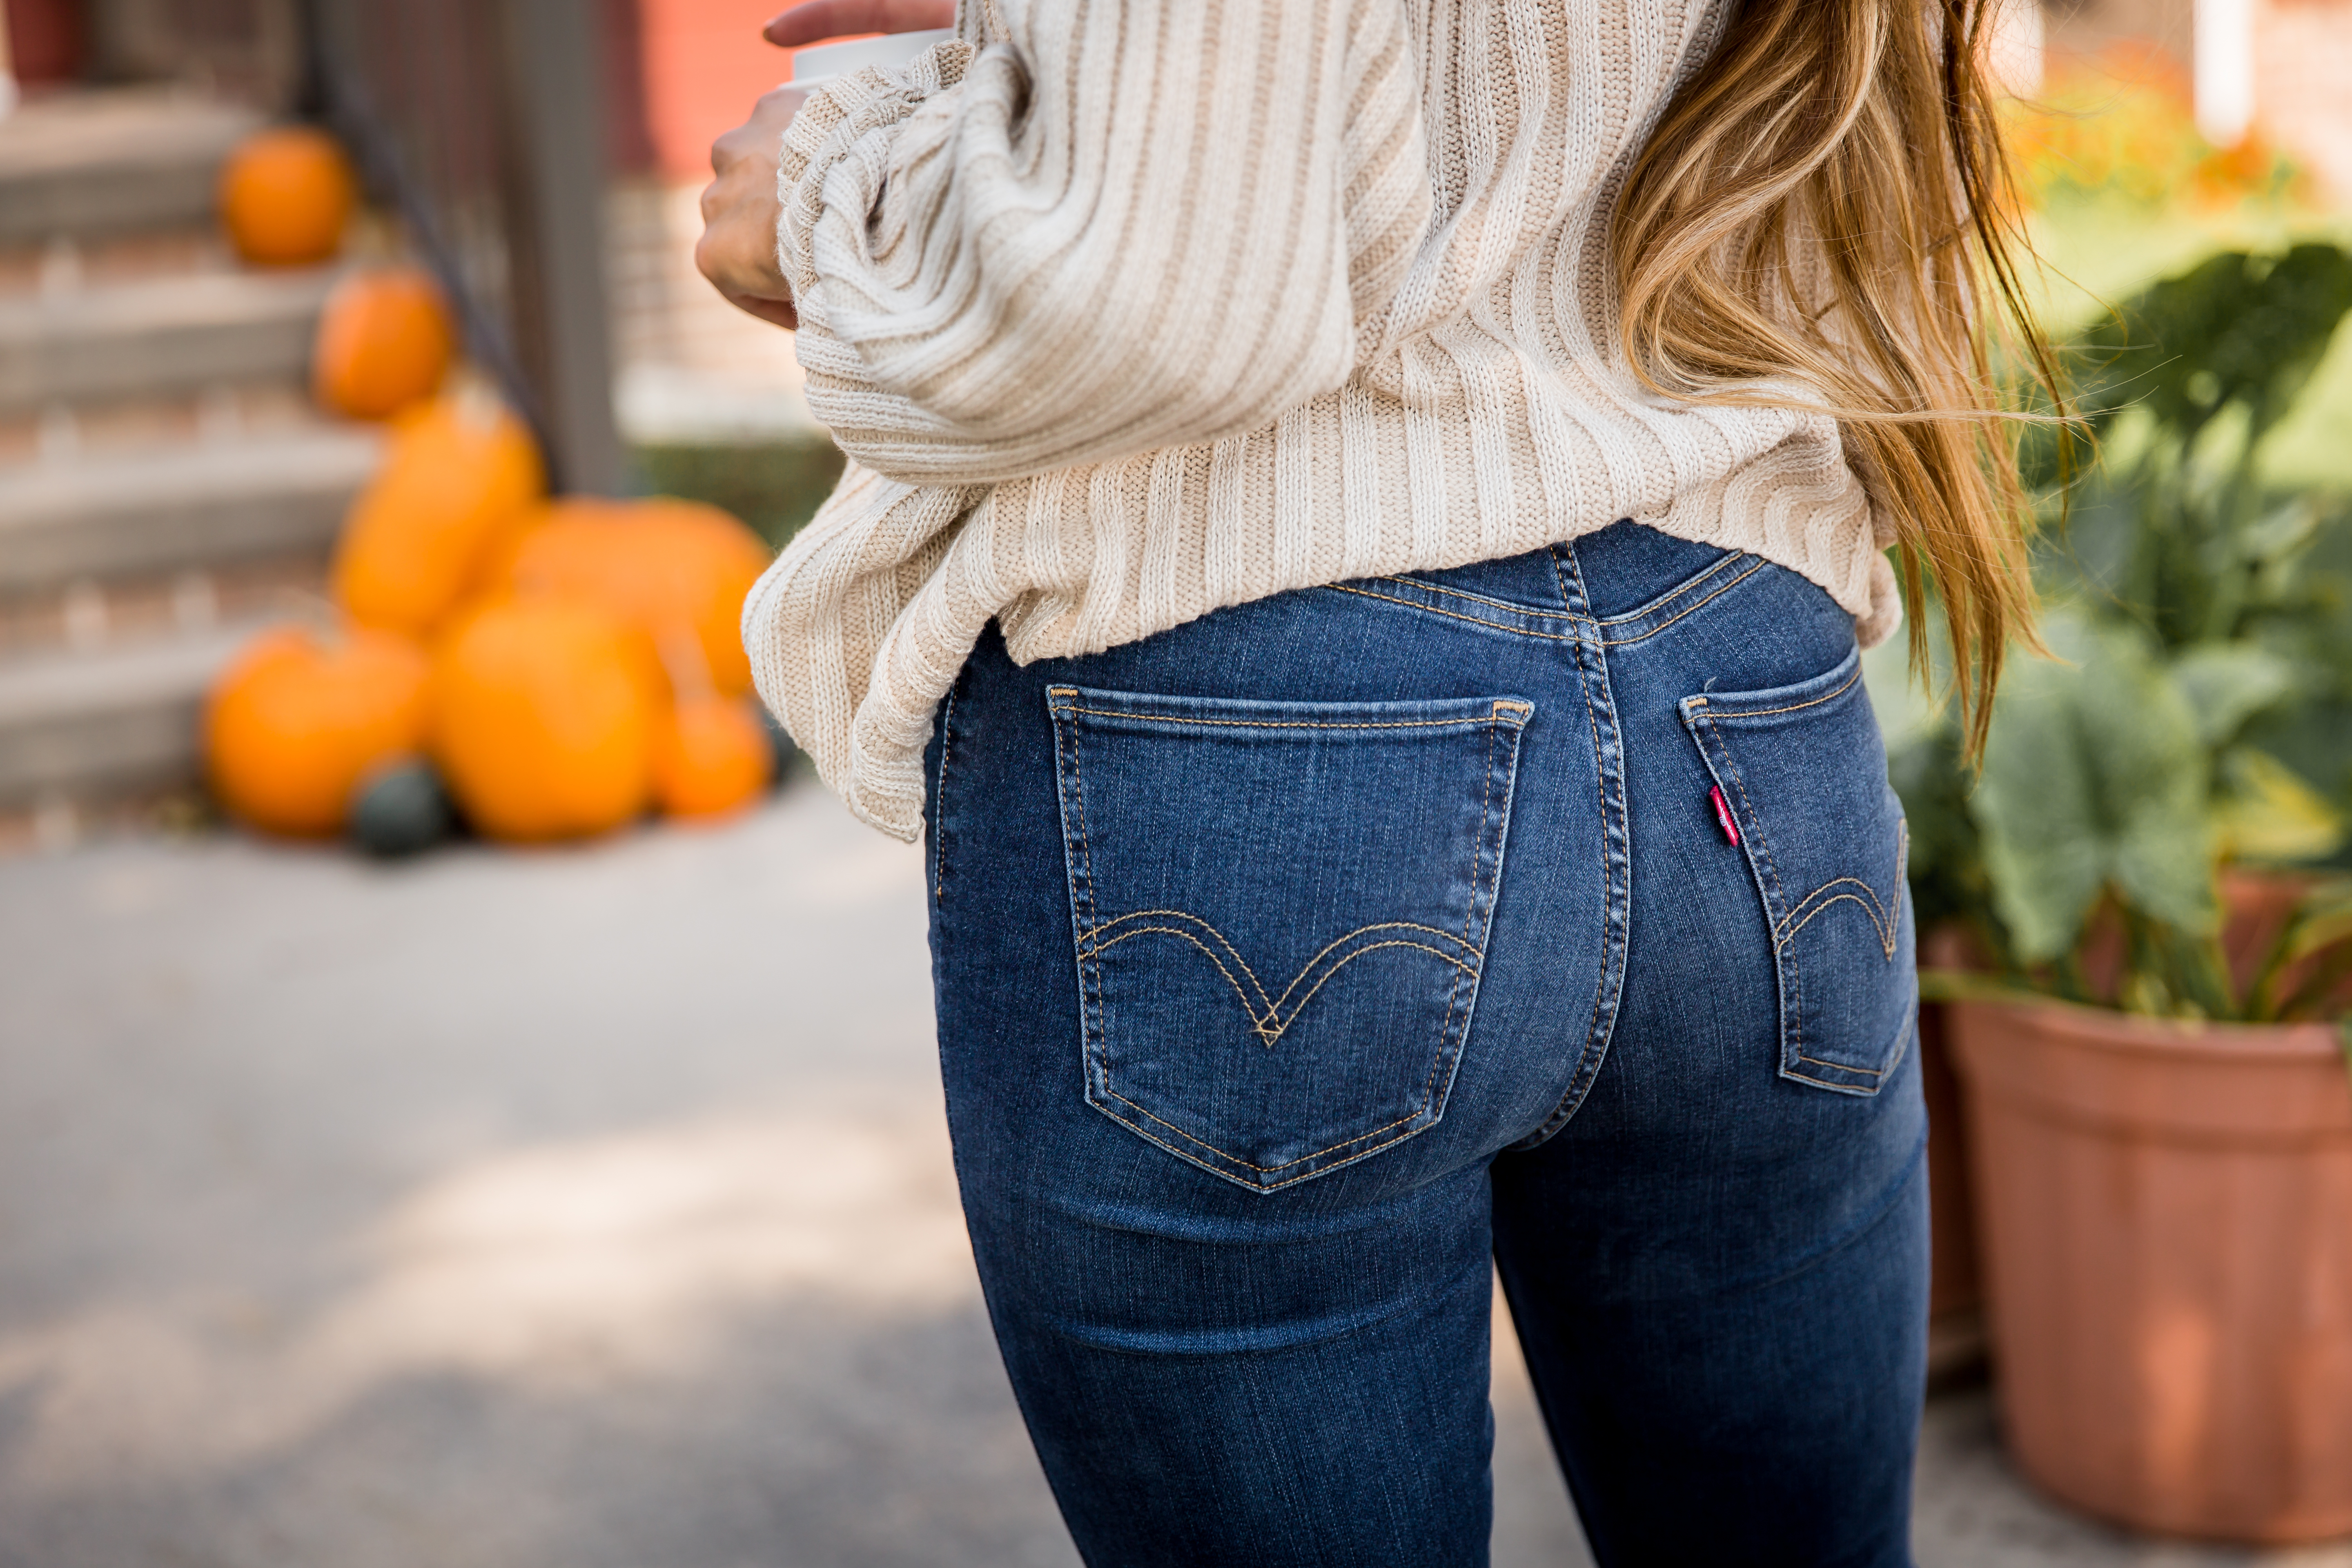 Fall calls for curve-hugging jeans that reach for the sky.